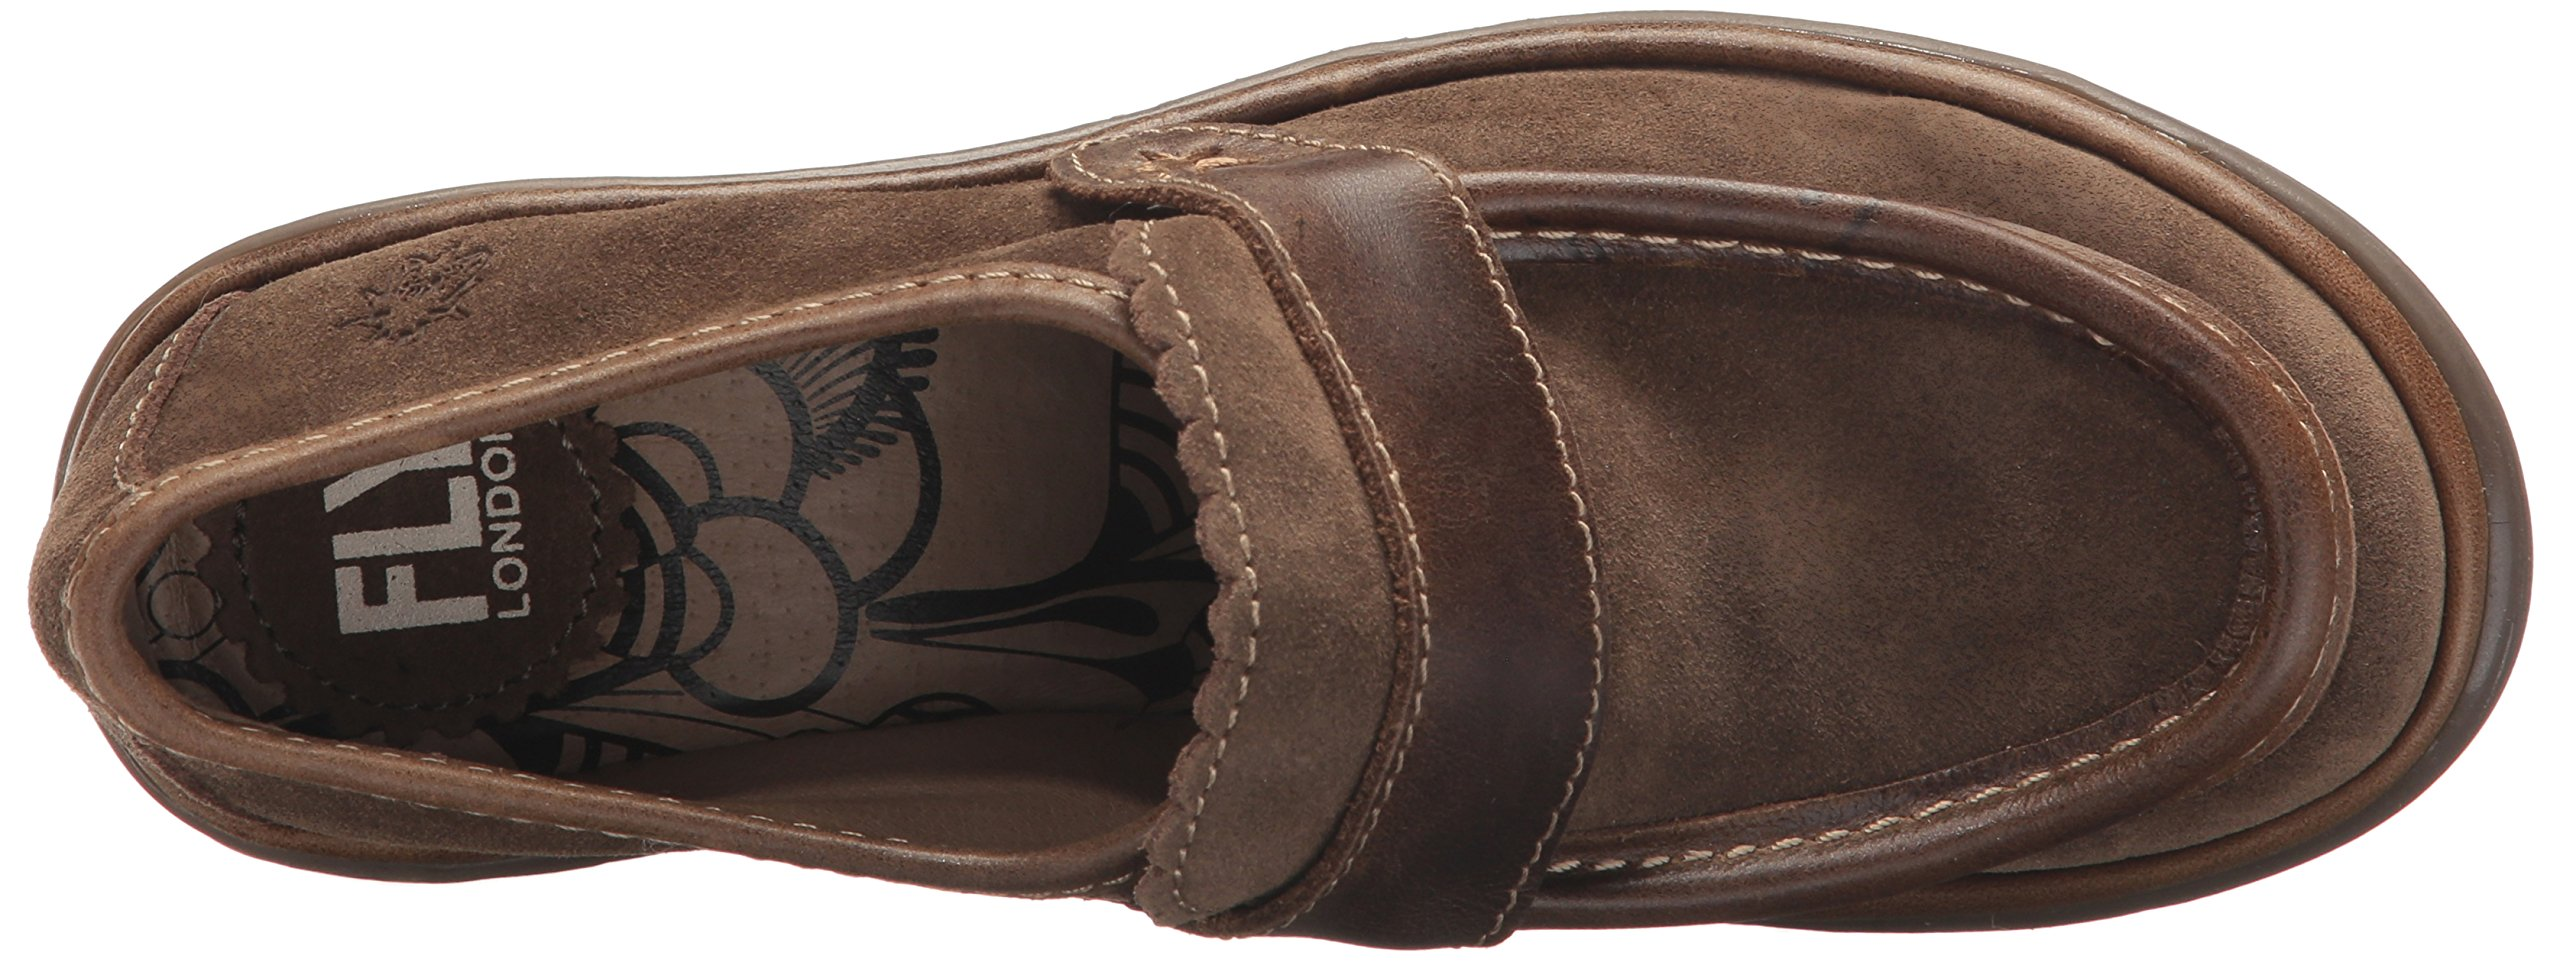 FLY London Women's WEND764FLY Penny Loafer, Sludge/Olive Oil Suede/Rug, 39 M EU (8-8.5 US) by FLY London (Image #8)